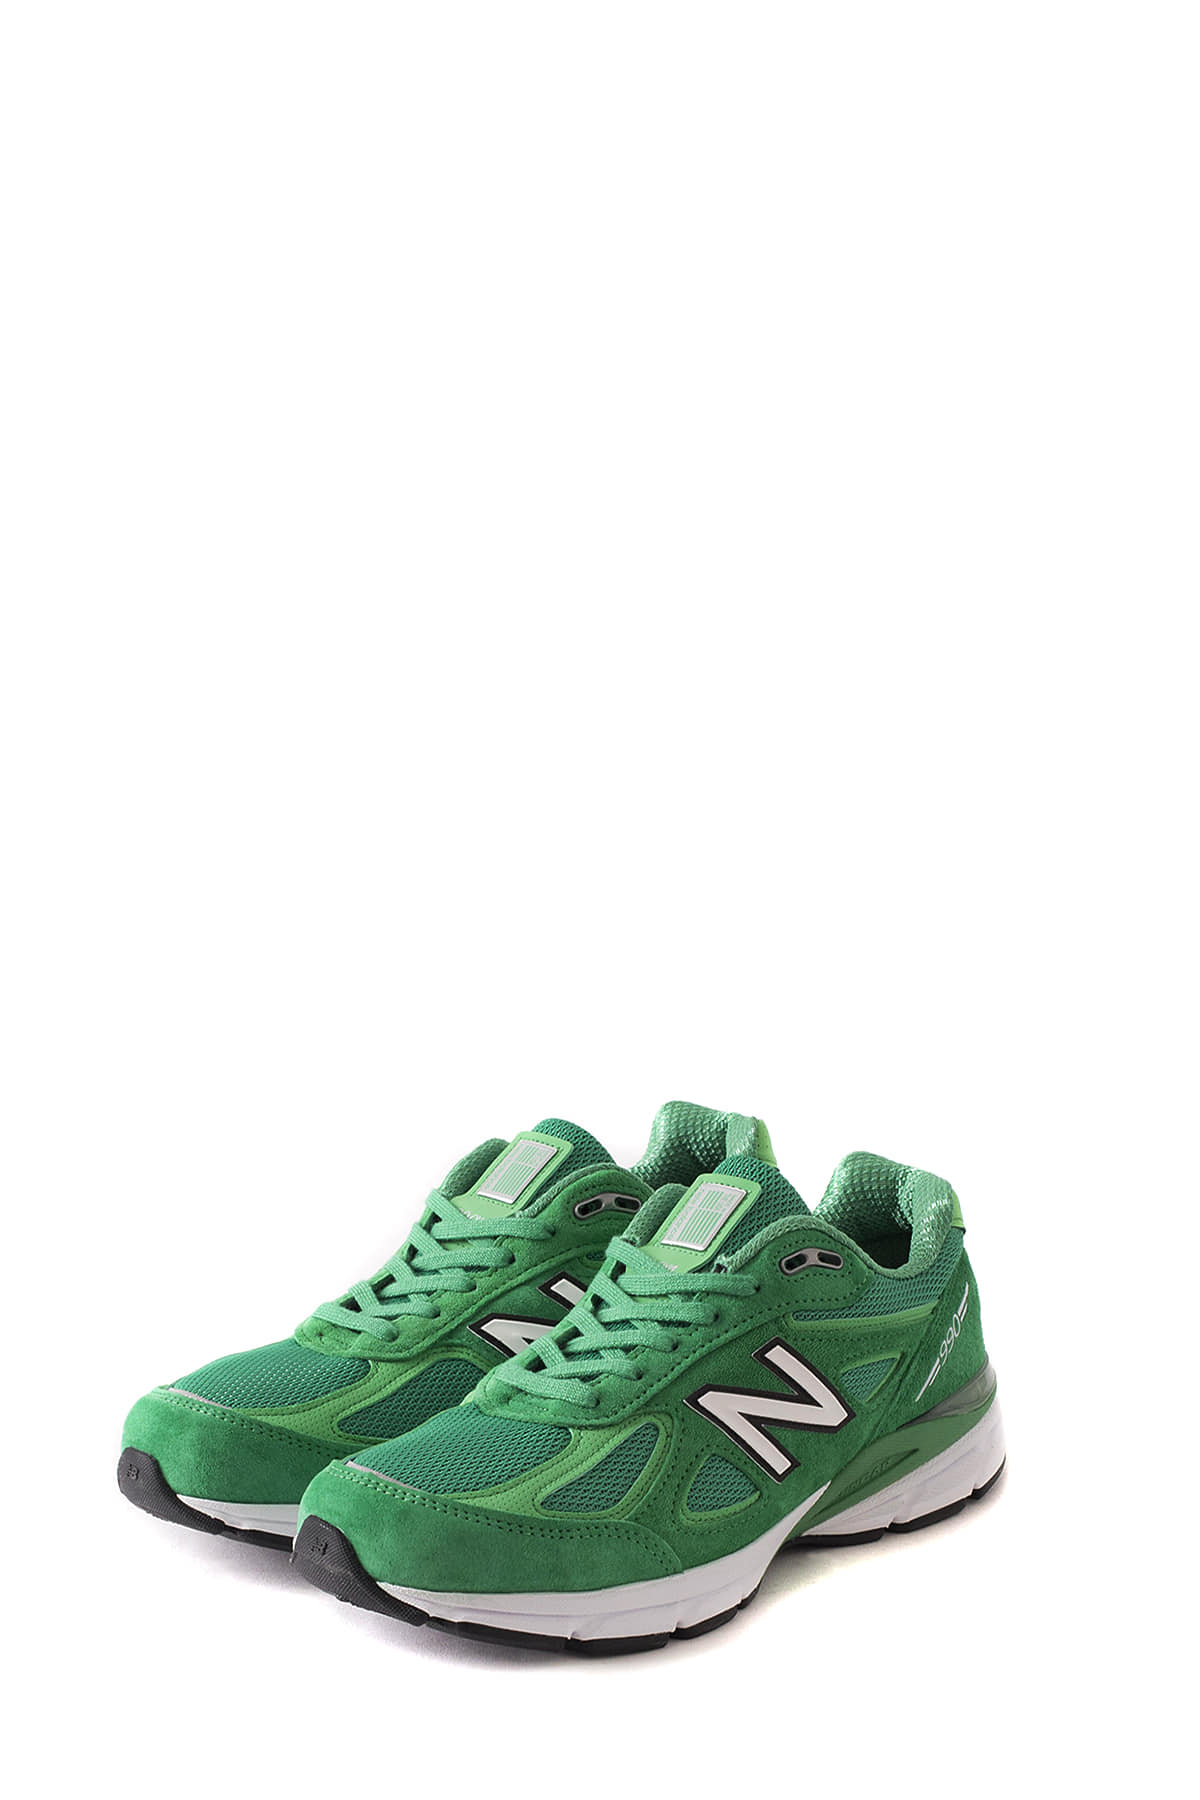 New Balance : M990NG4 (Green)